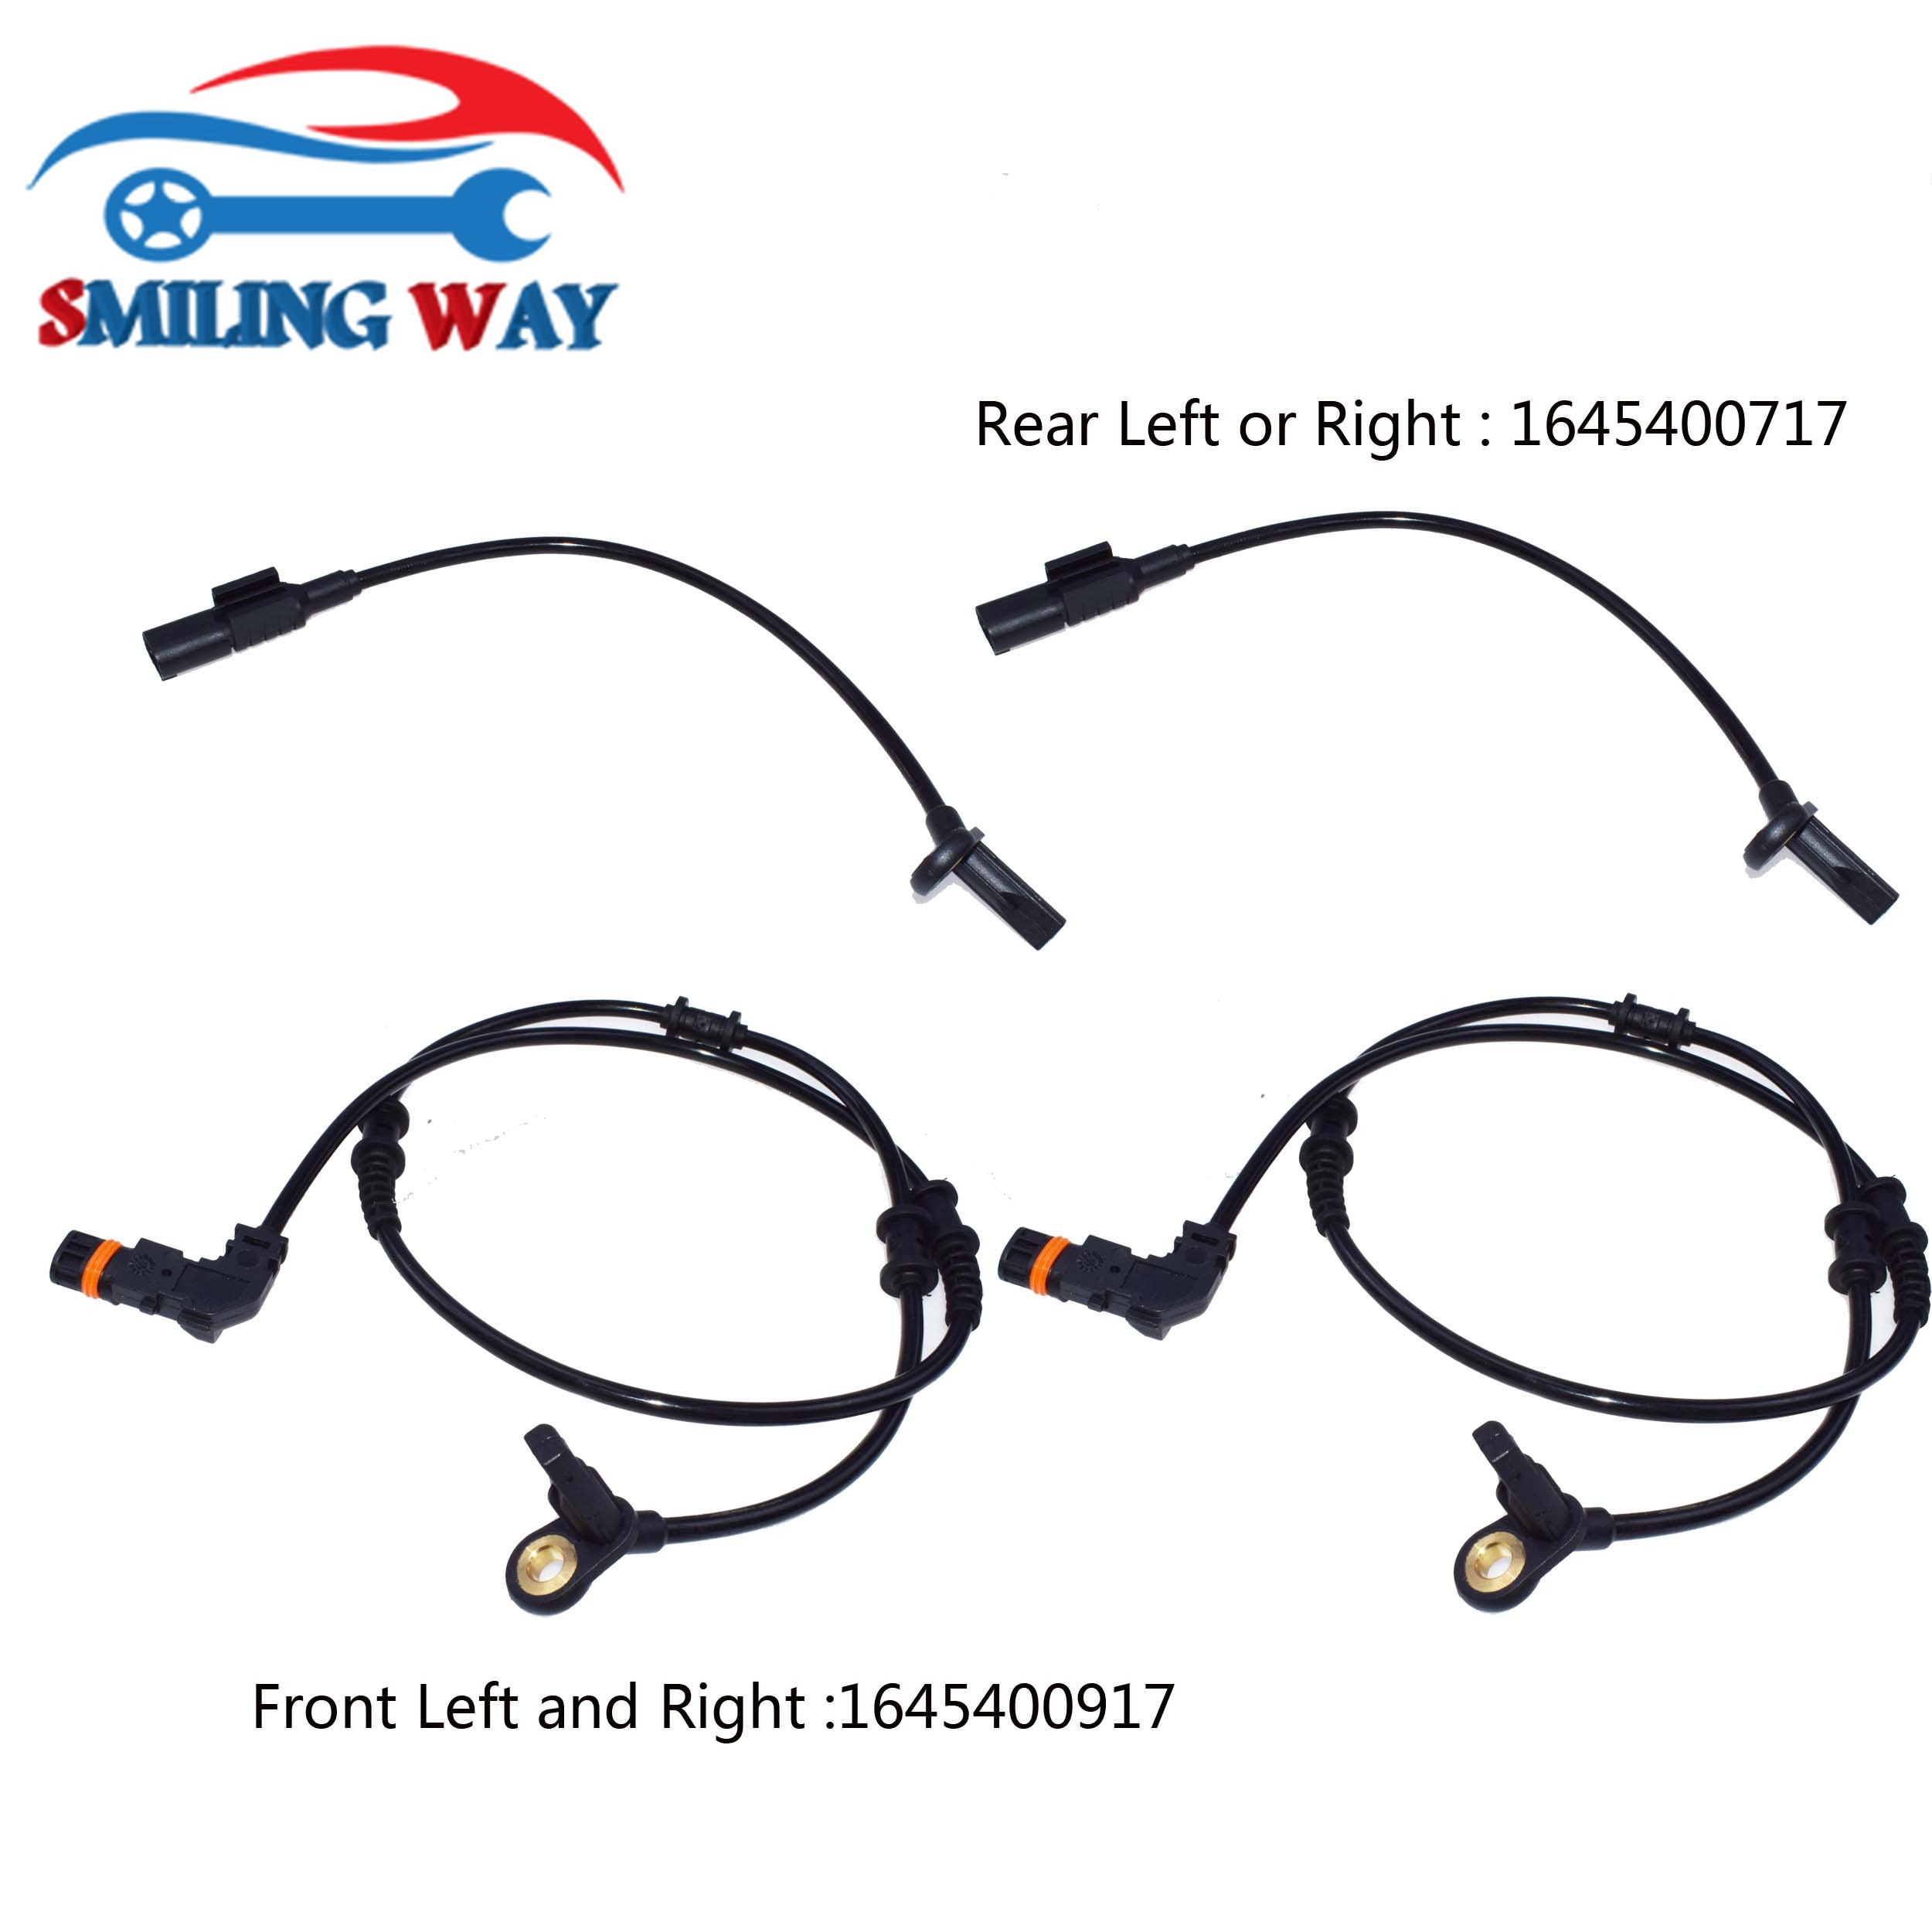 Front Rear Left Right ABS Wheel Speed Sensor For Mercedes-Benz X164 W164 W251 GL350 GL320 ML320 ML350 OE# 1645400717 1645400917(China)